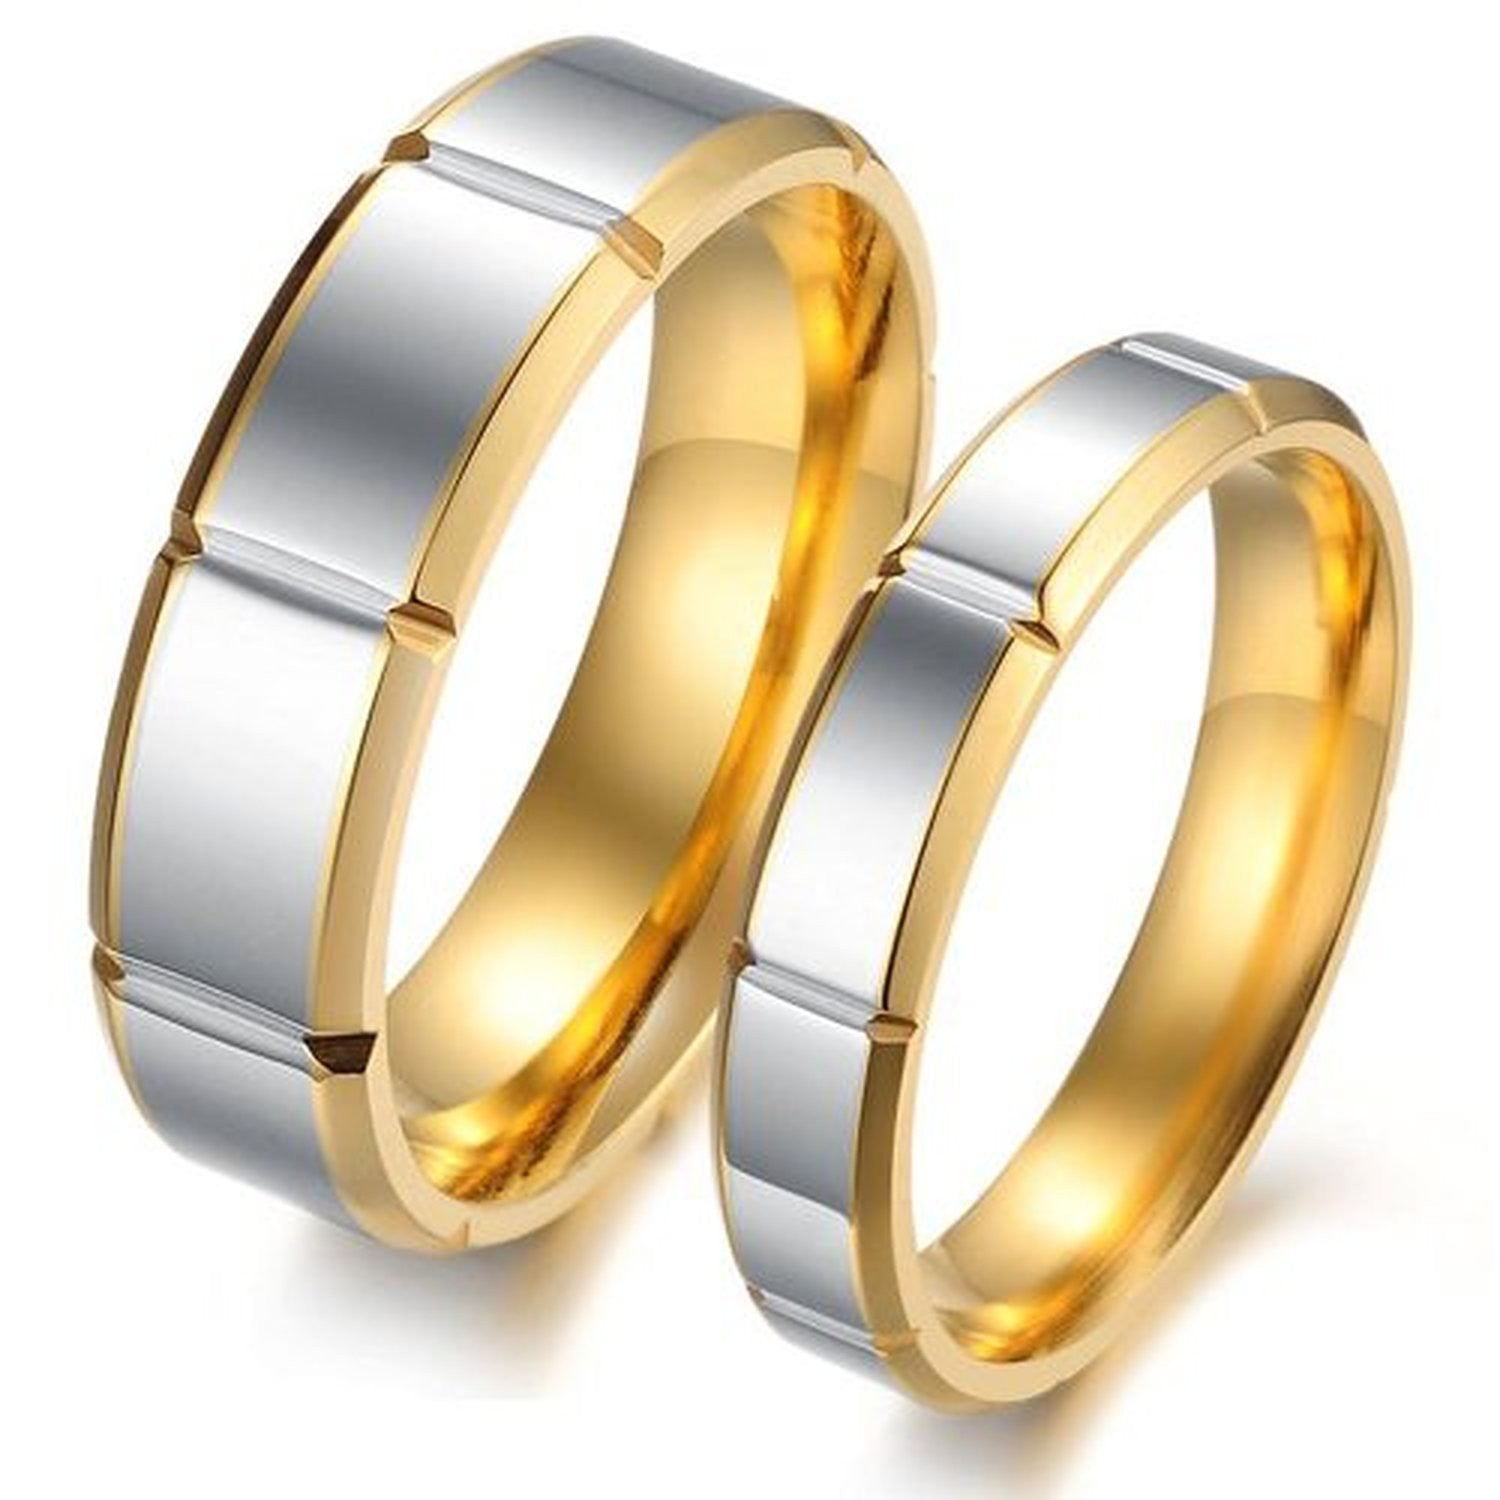 for and your you weddig ring evermarker beautiful ideas couple awesome wedding bands idea lovely soulmate rings